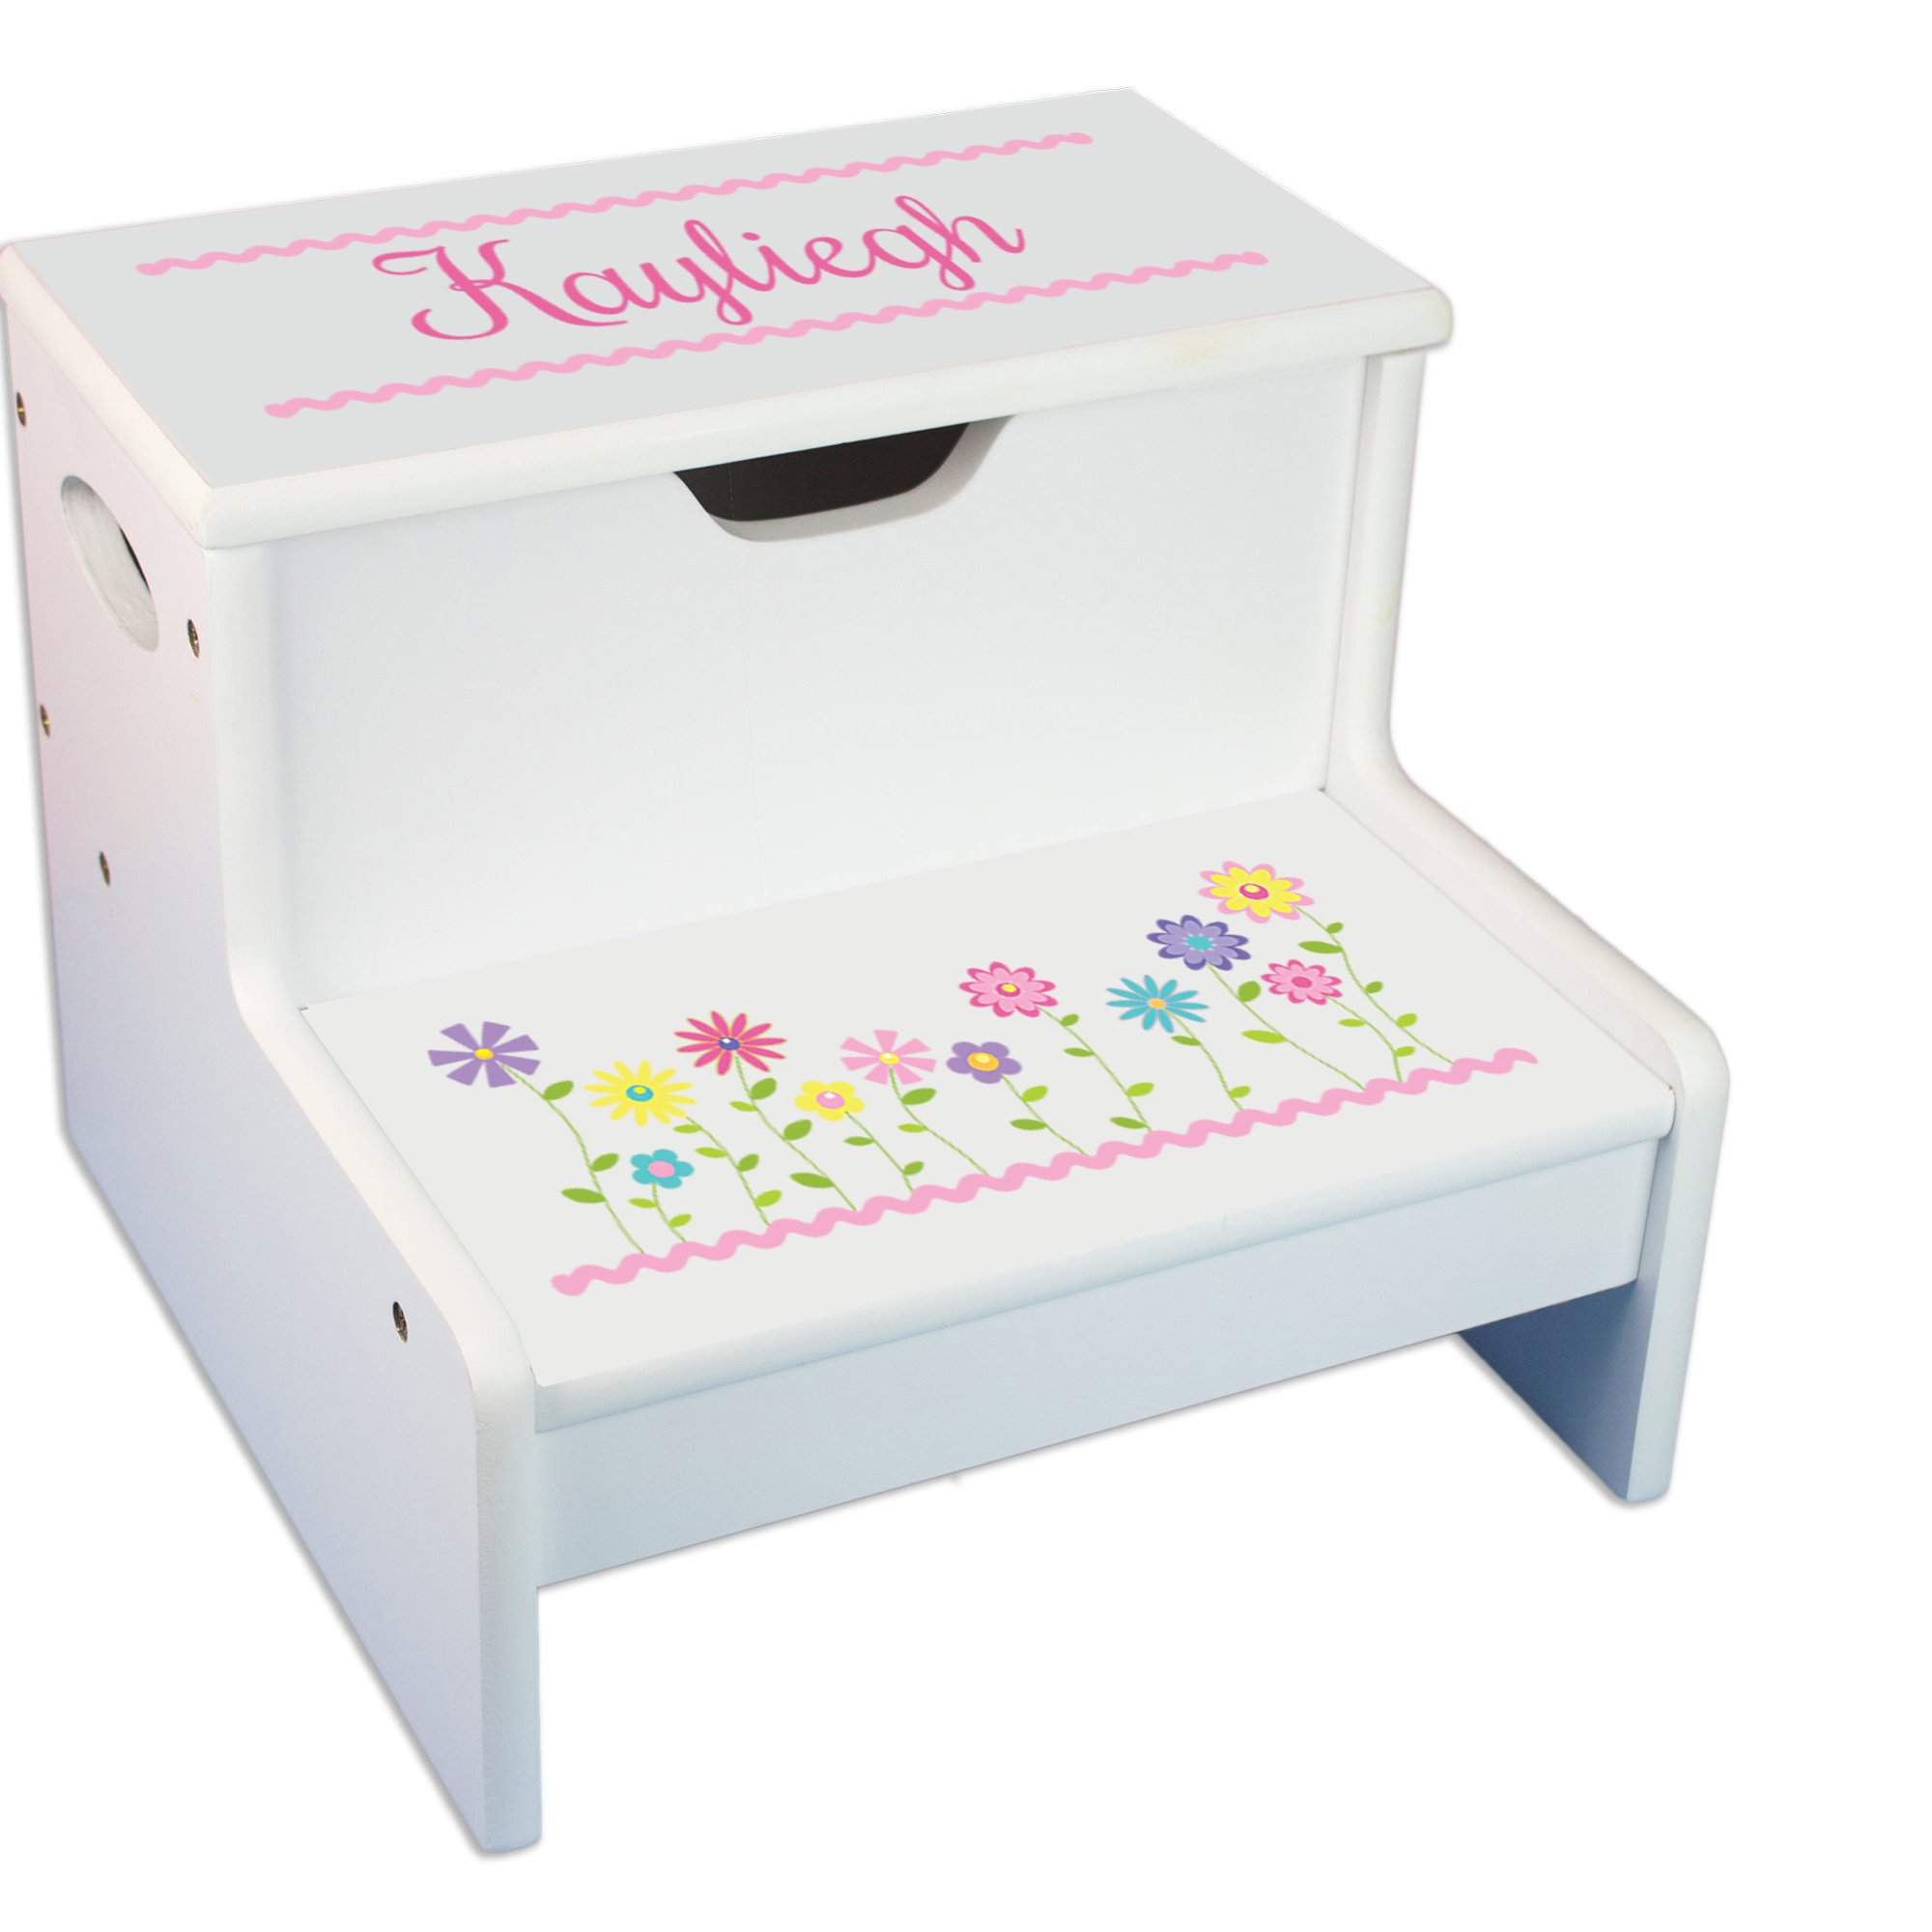 Personalized Stemmed Flowers White Childrens Step Stool with Storage